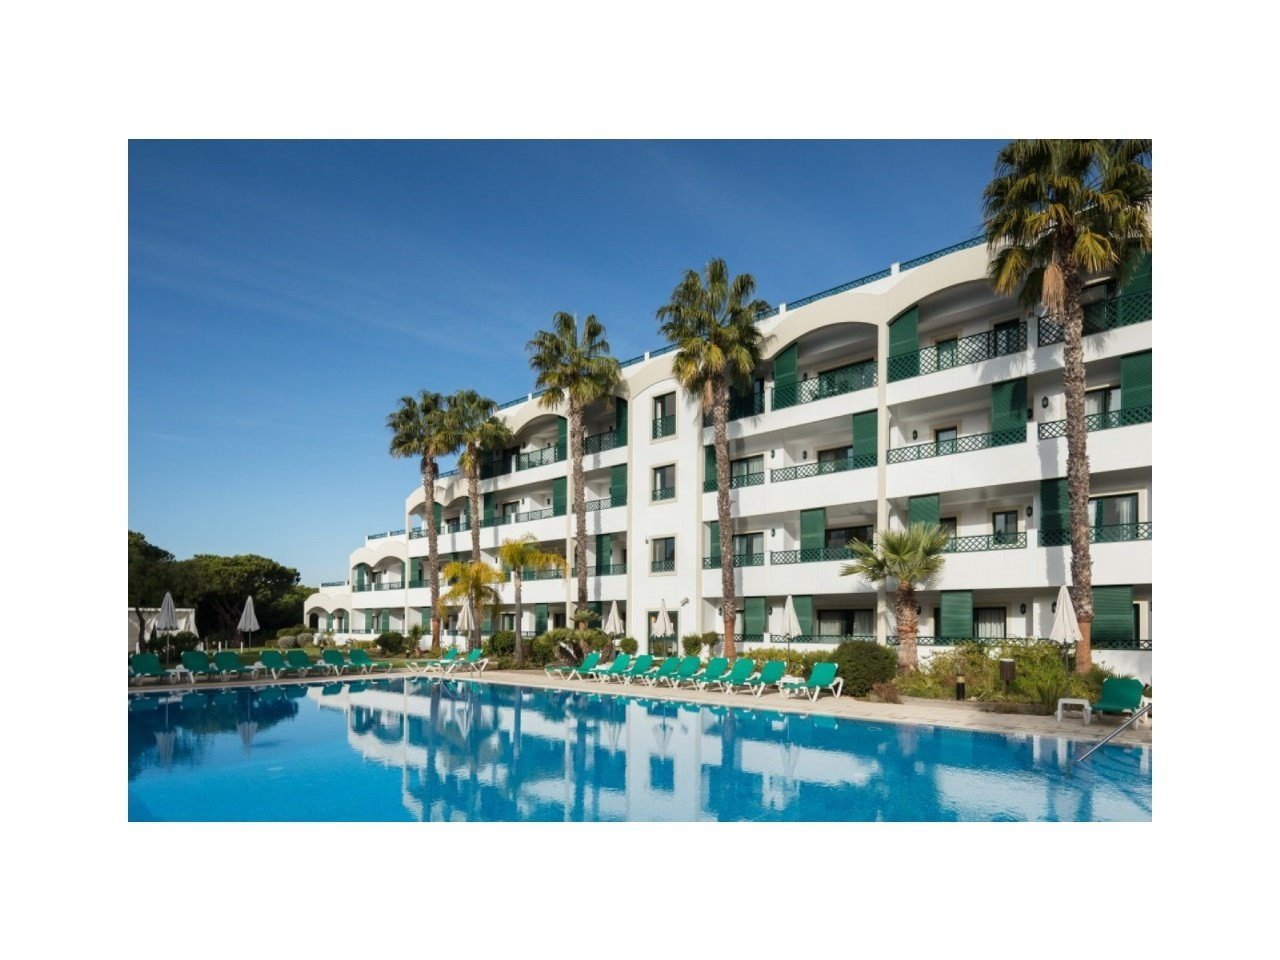 2 Bedroom Apartment Almancil, Central Algarve Ref: AAA49